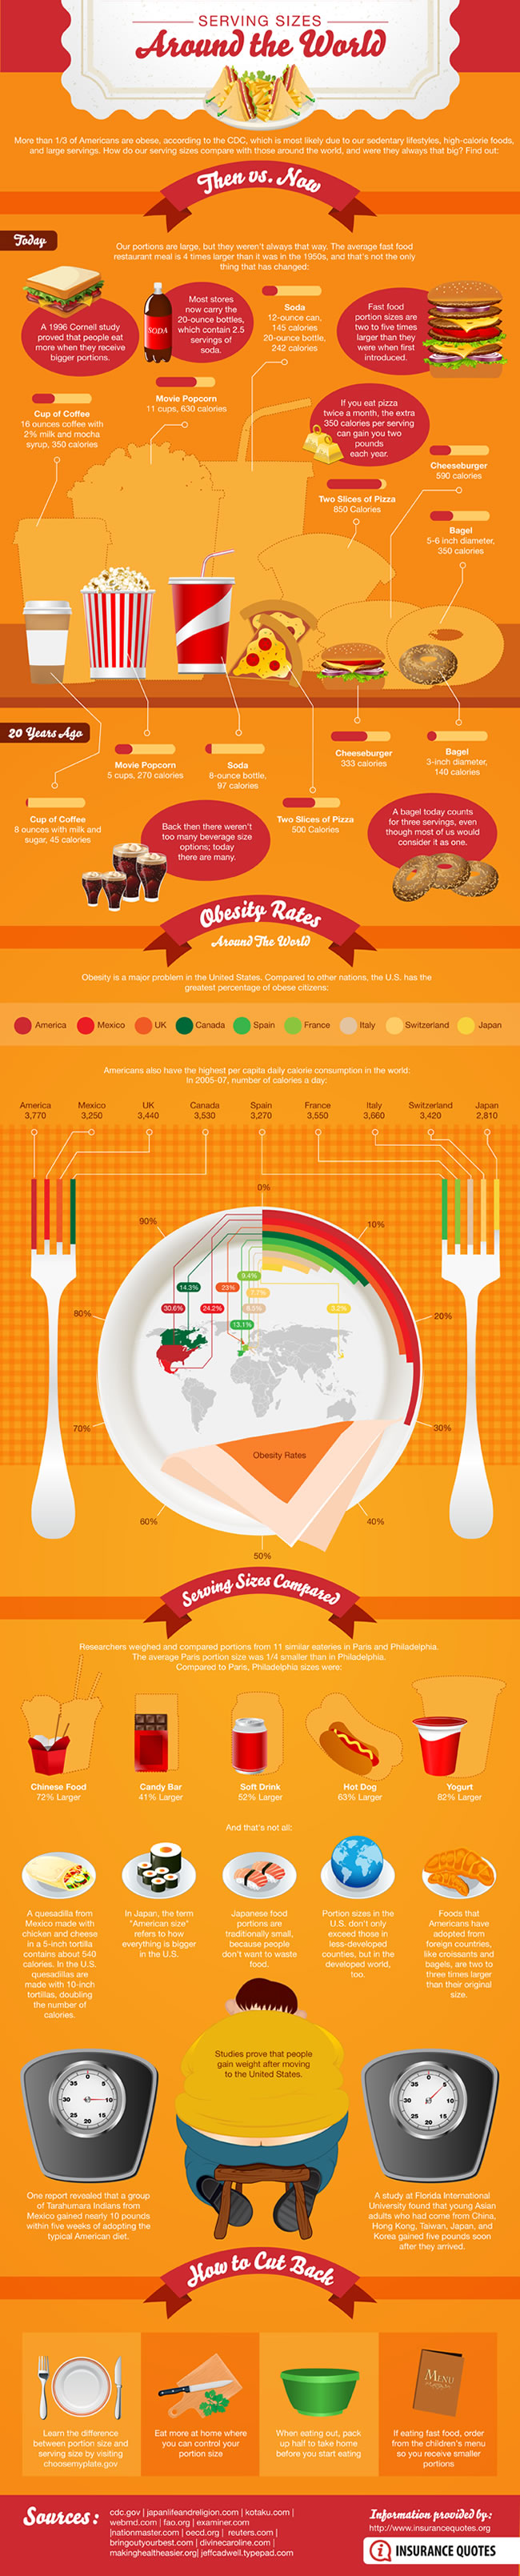 Serving-Sizes-Around-The-World-infographic